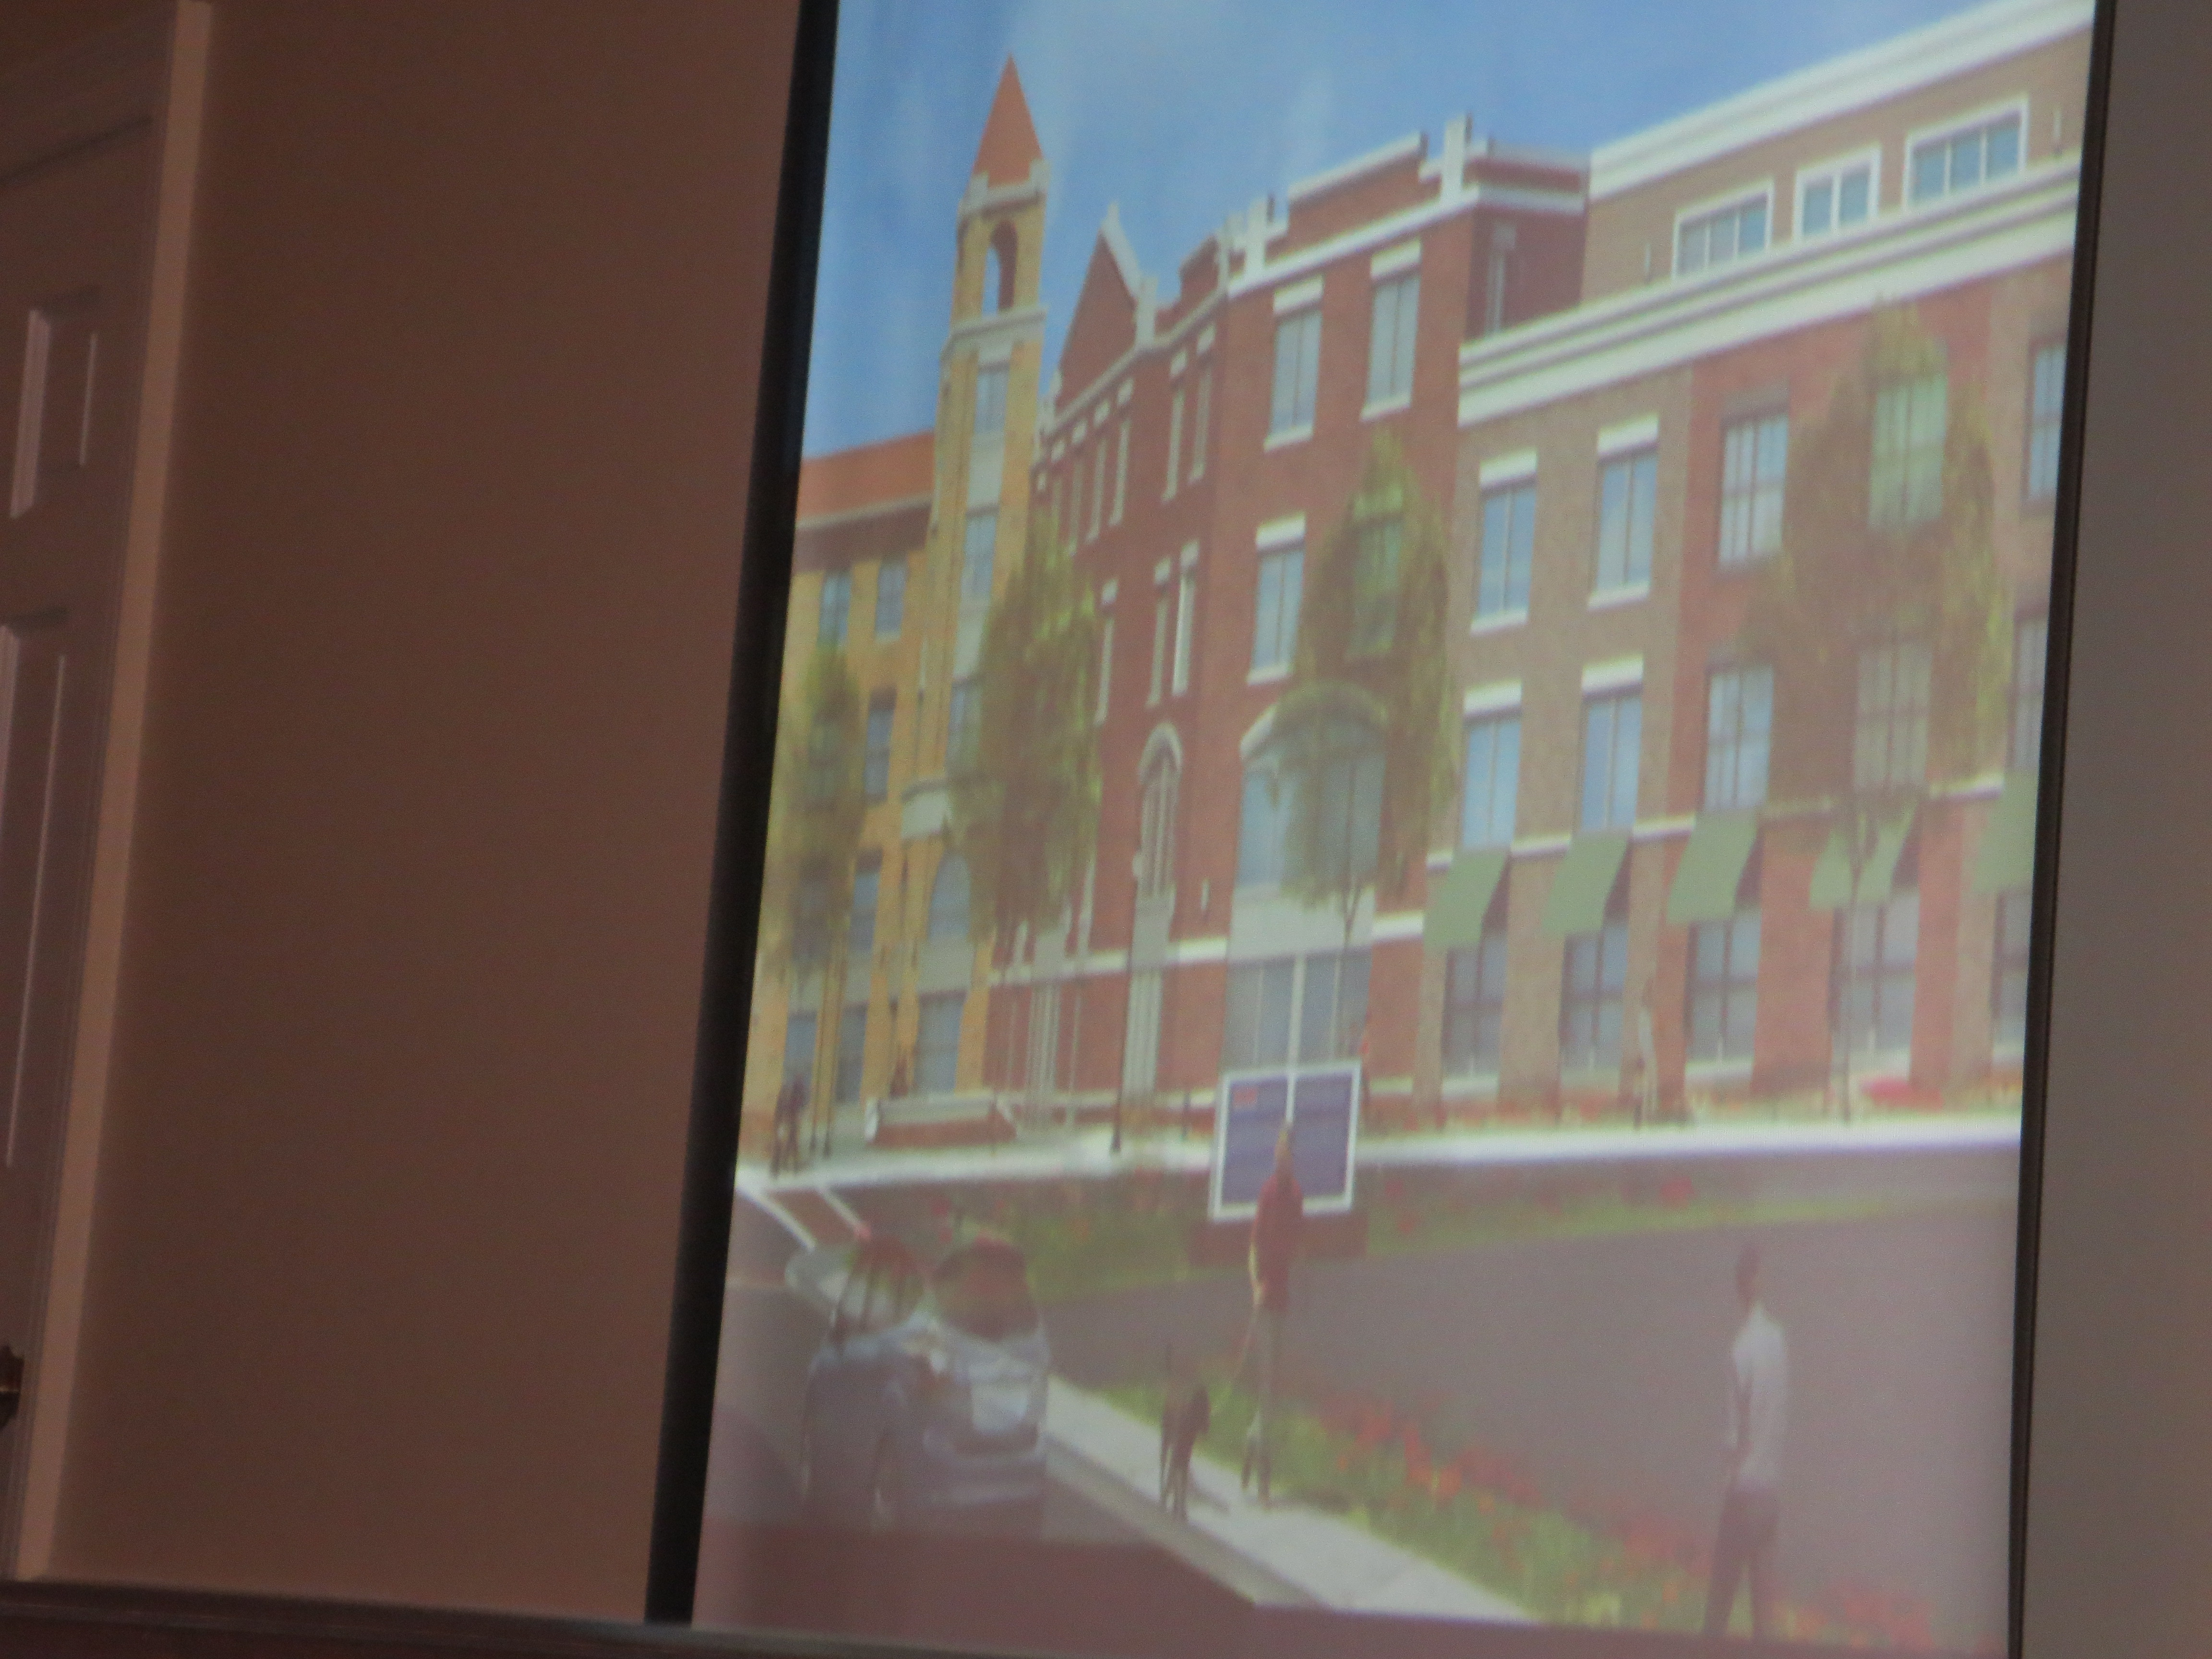 Westfield Planning Board Approves 70 Unit Apartment plex on